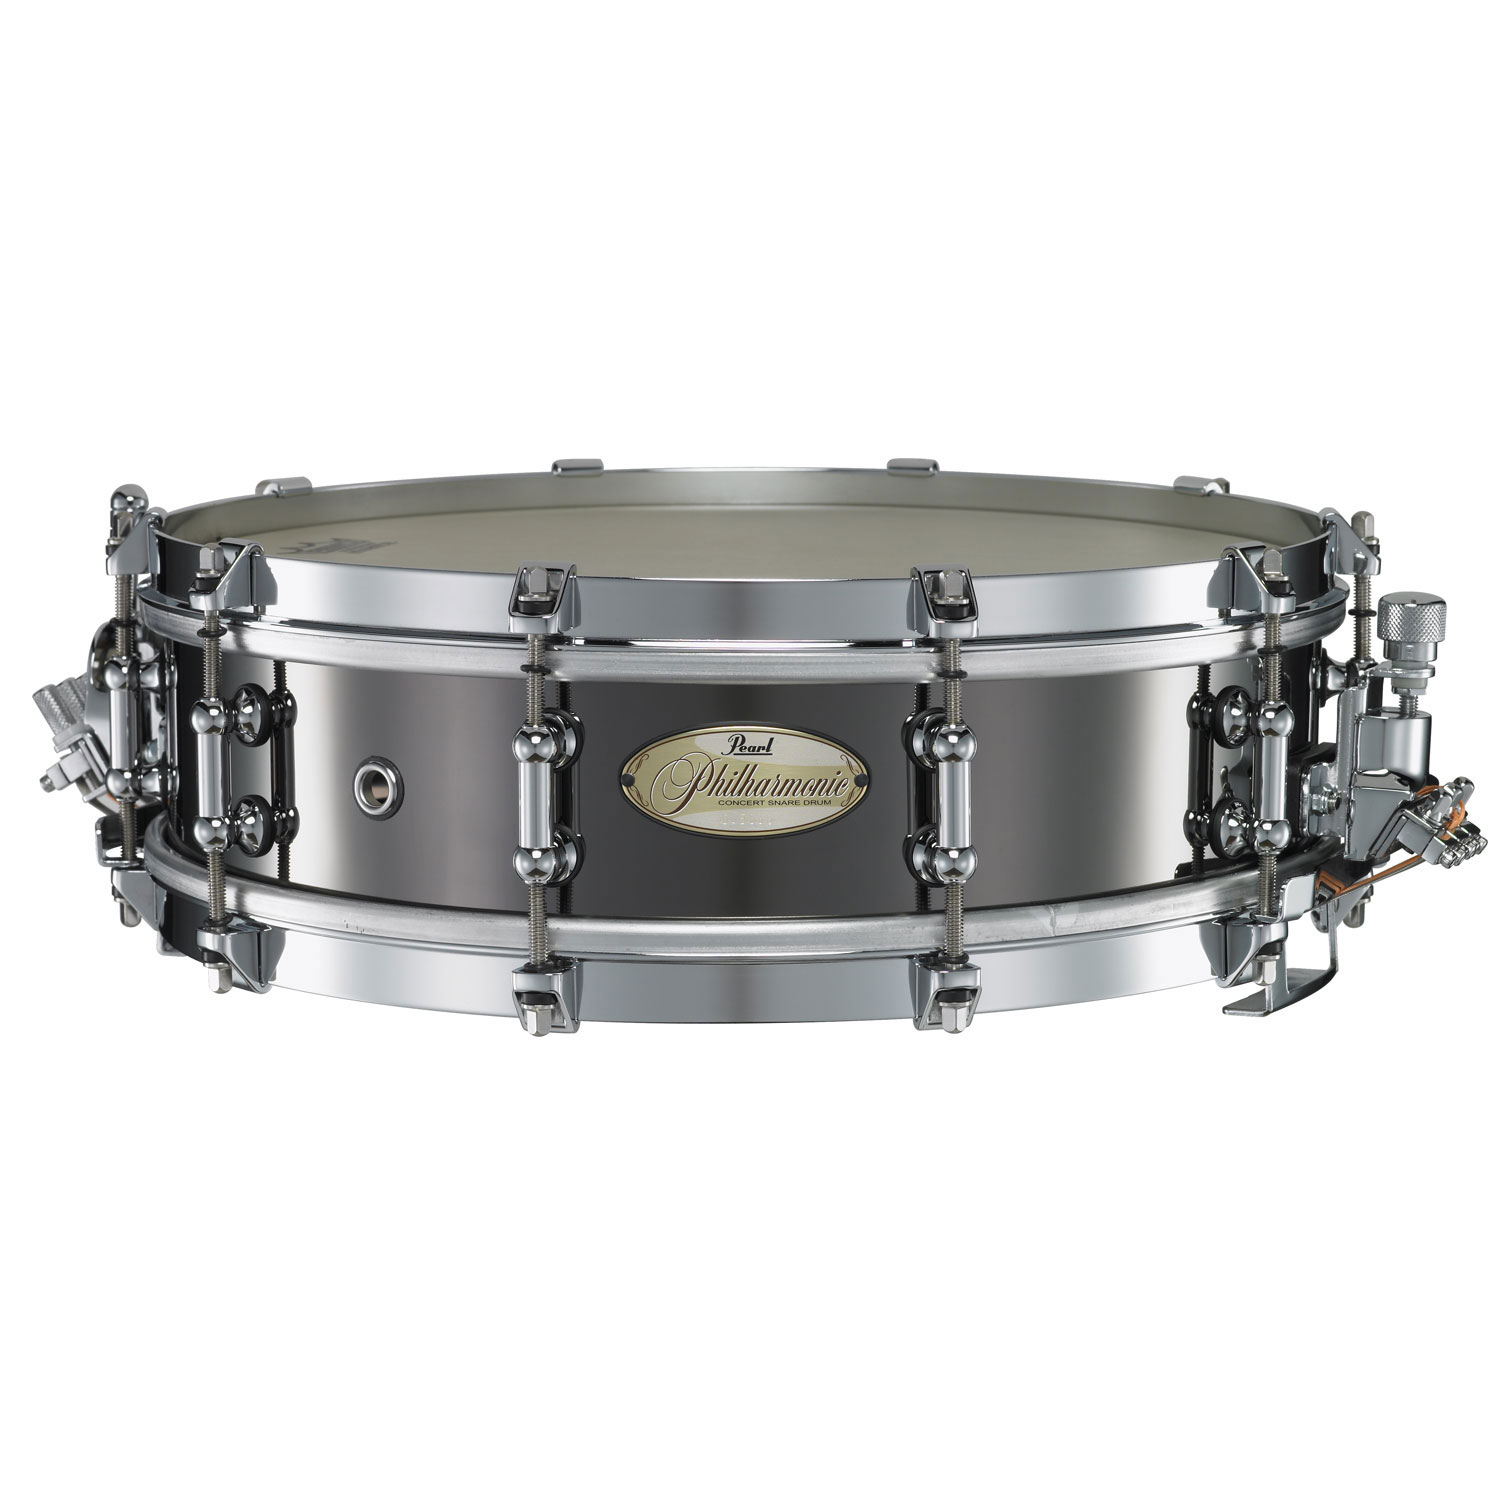 "Pearl 14"" x 4"" Philharmonic 1.5mm Brass Concert Snare Drum"